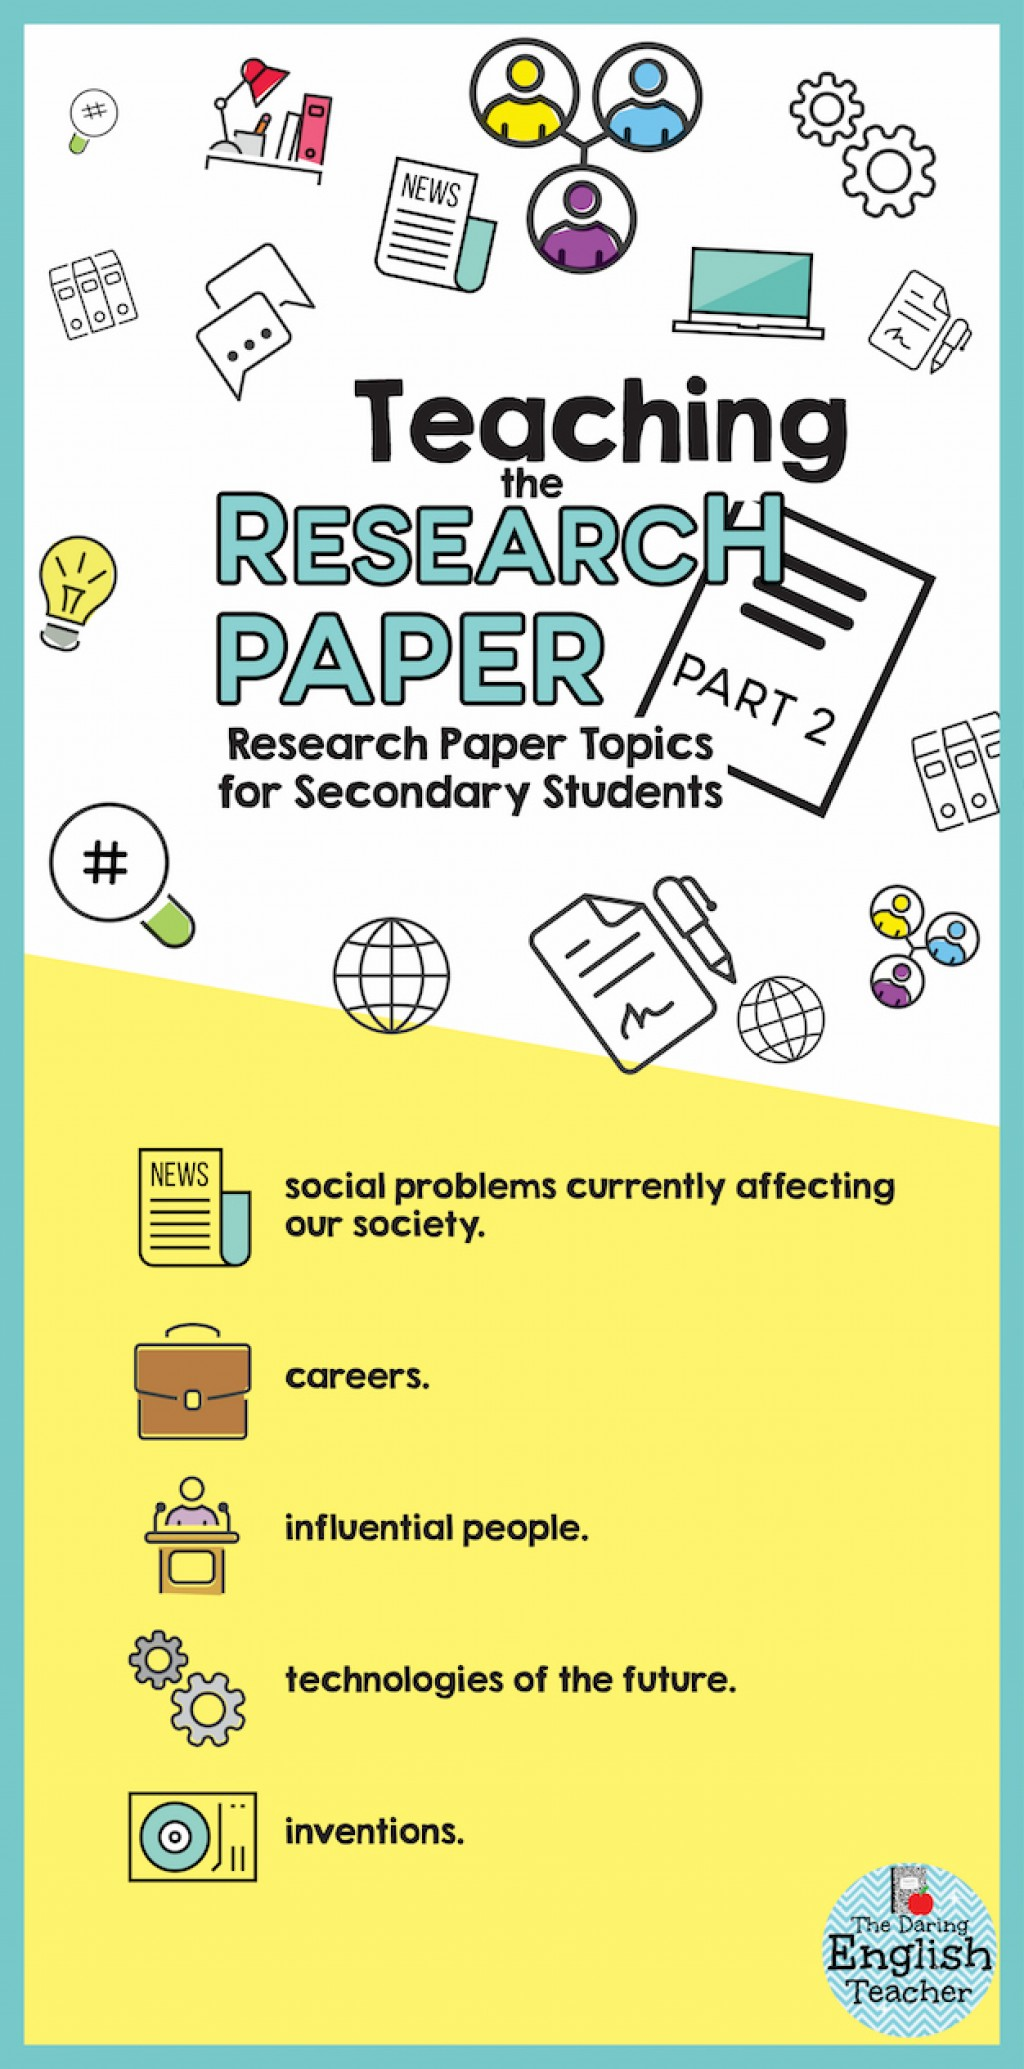 020 Infographic2bp22b2 Research Paper Topic For Unusual A Physical Education Topics In Psychology High School Large